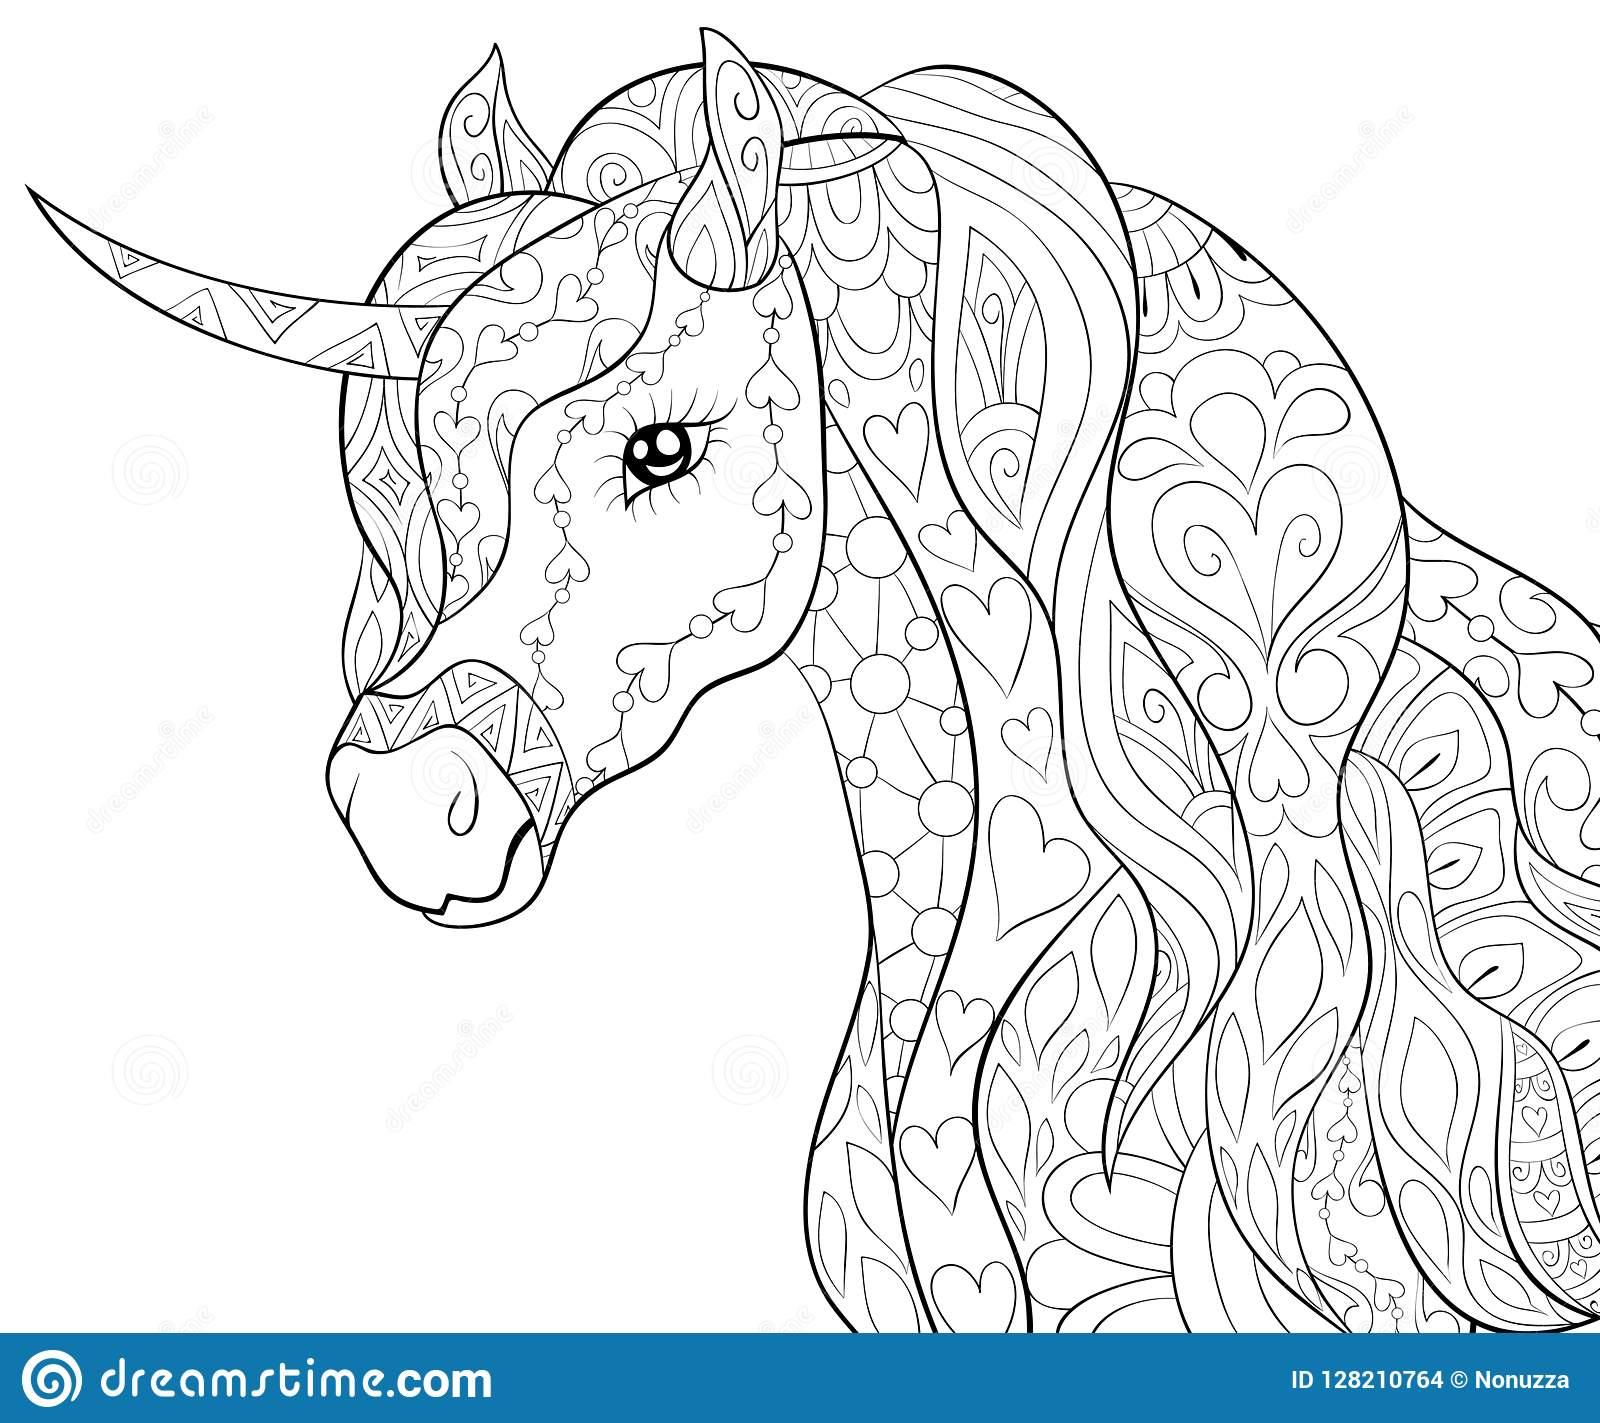 Adult Coloring Book,page A Cute Horse,unicorn Image For ...